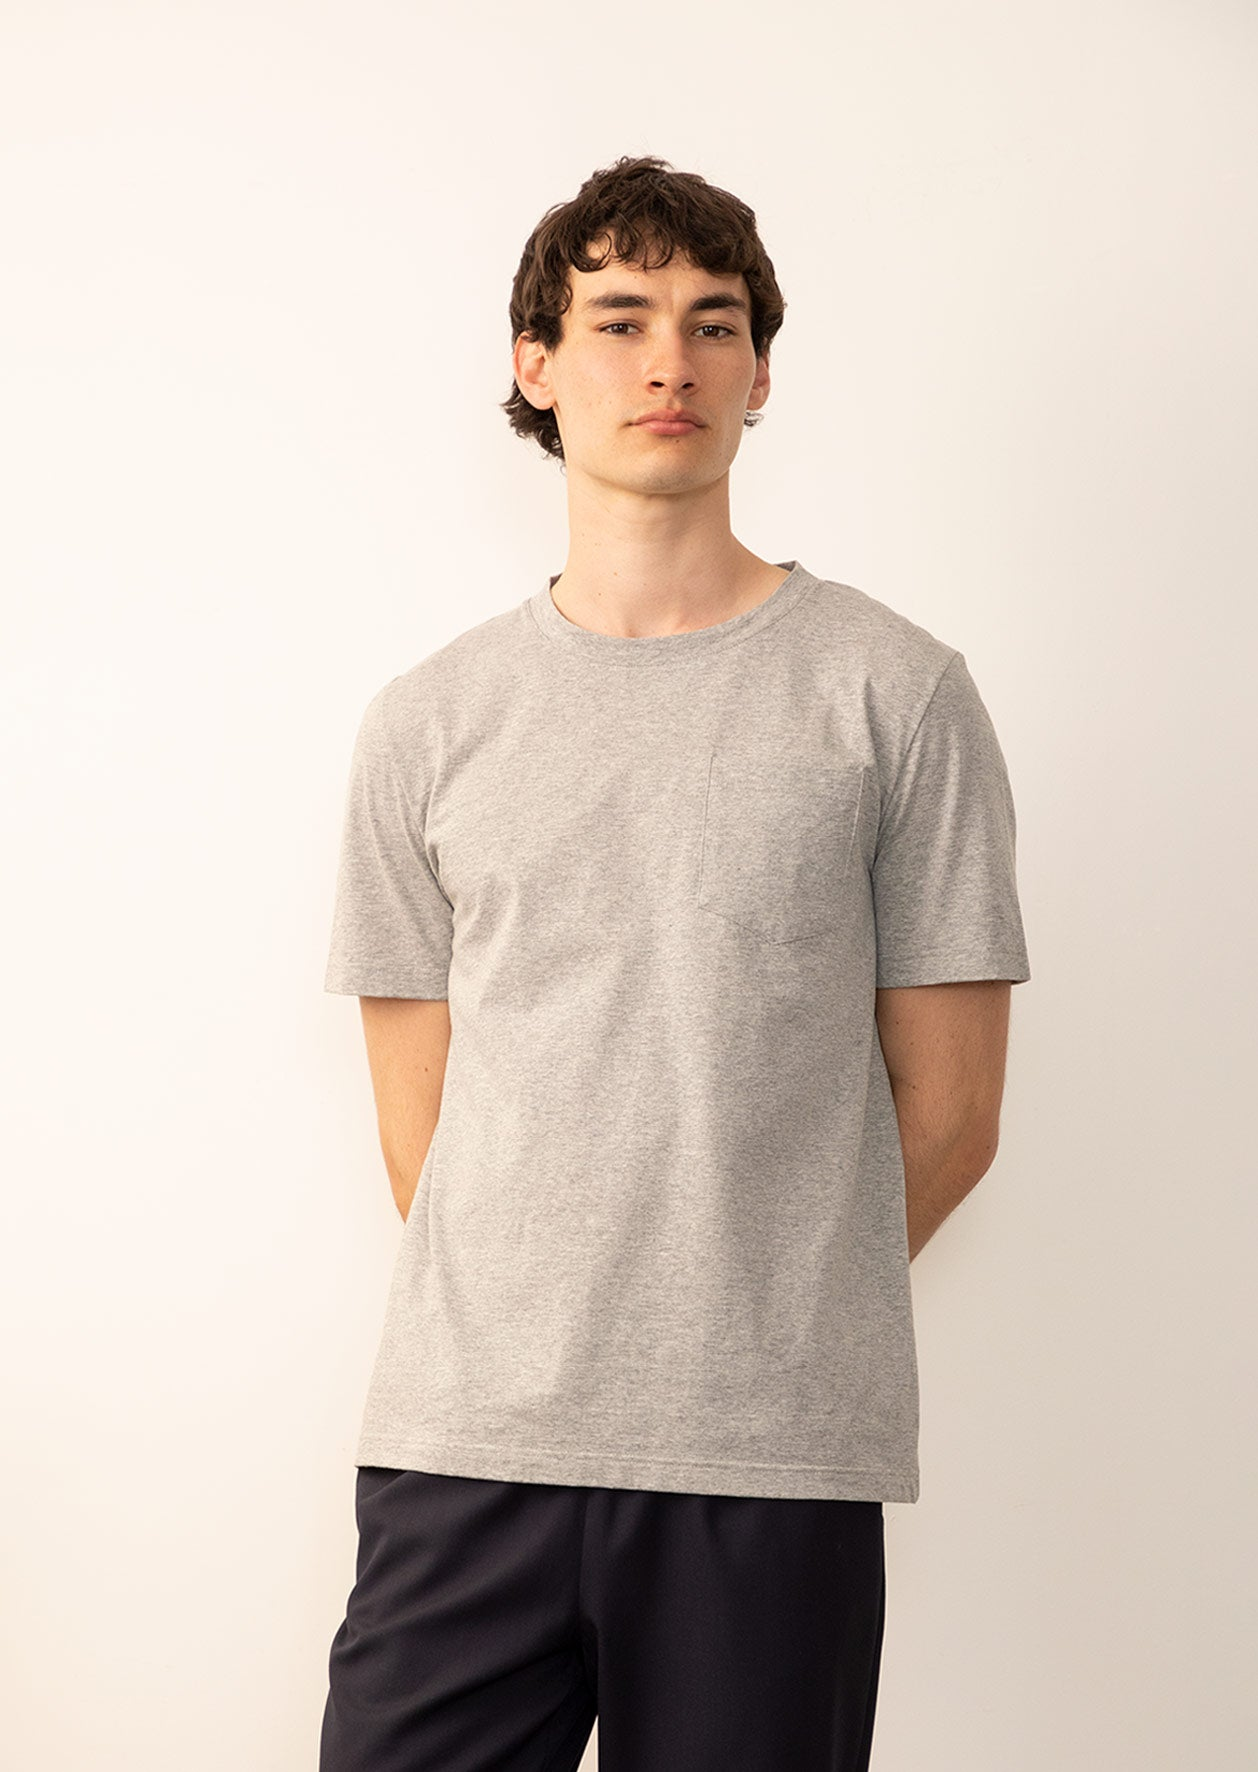 De Bonne Facture - Permanent - Essential t-shirt - Organic cotton jersey